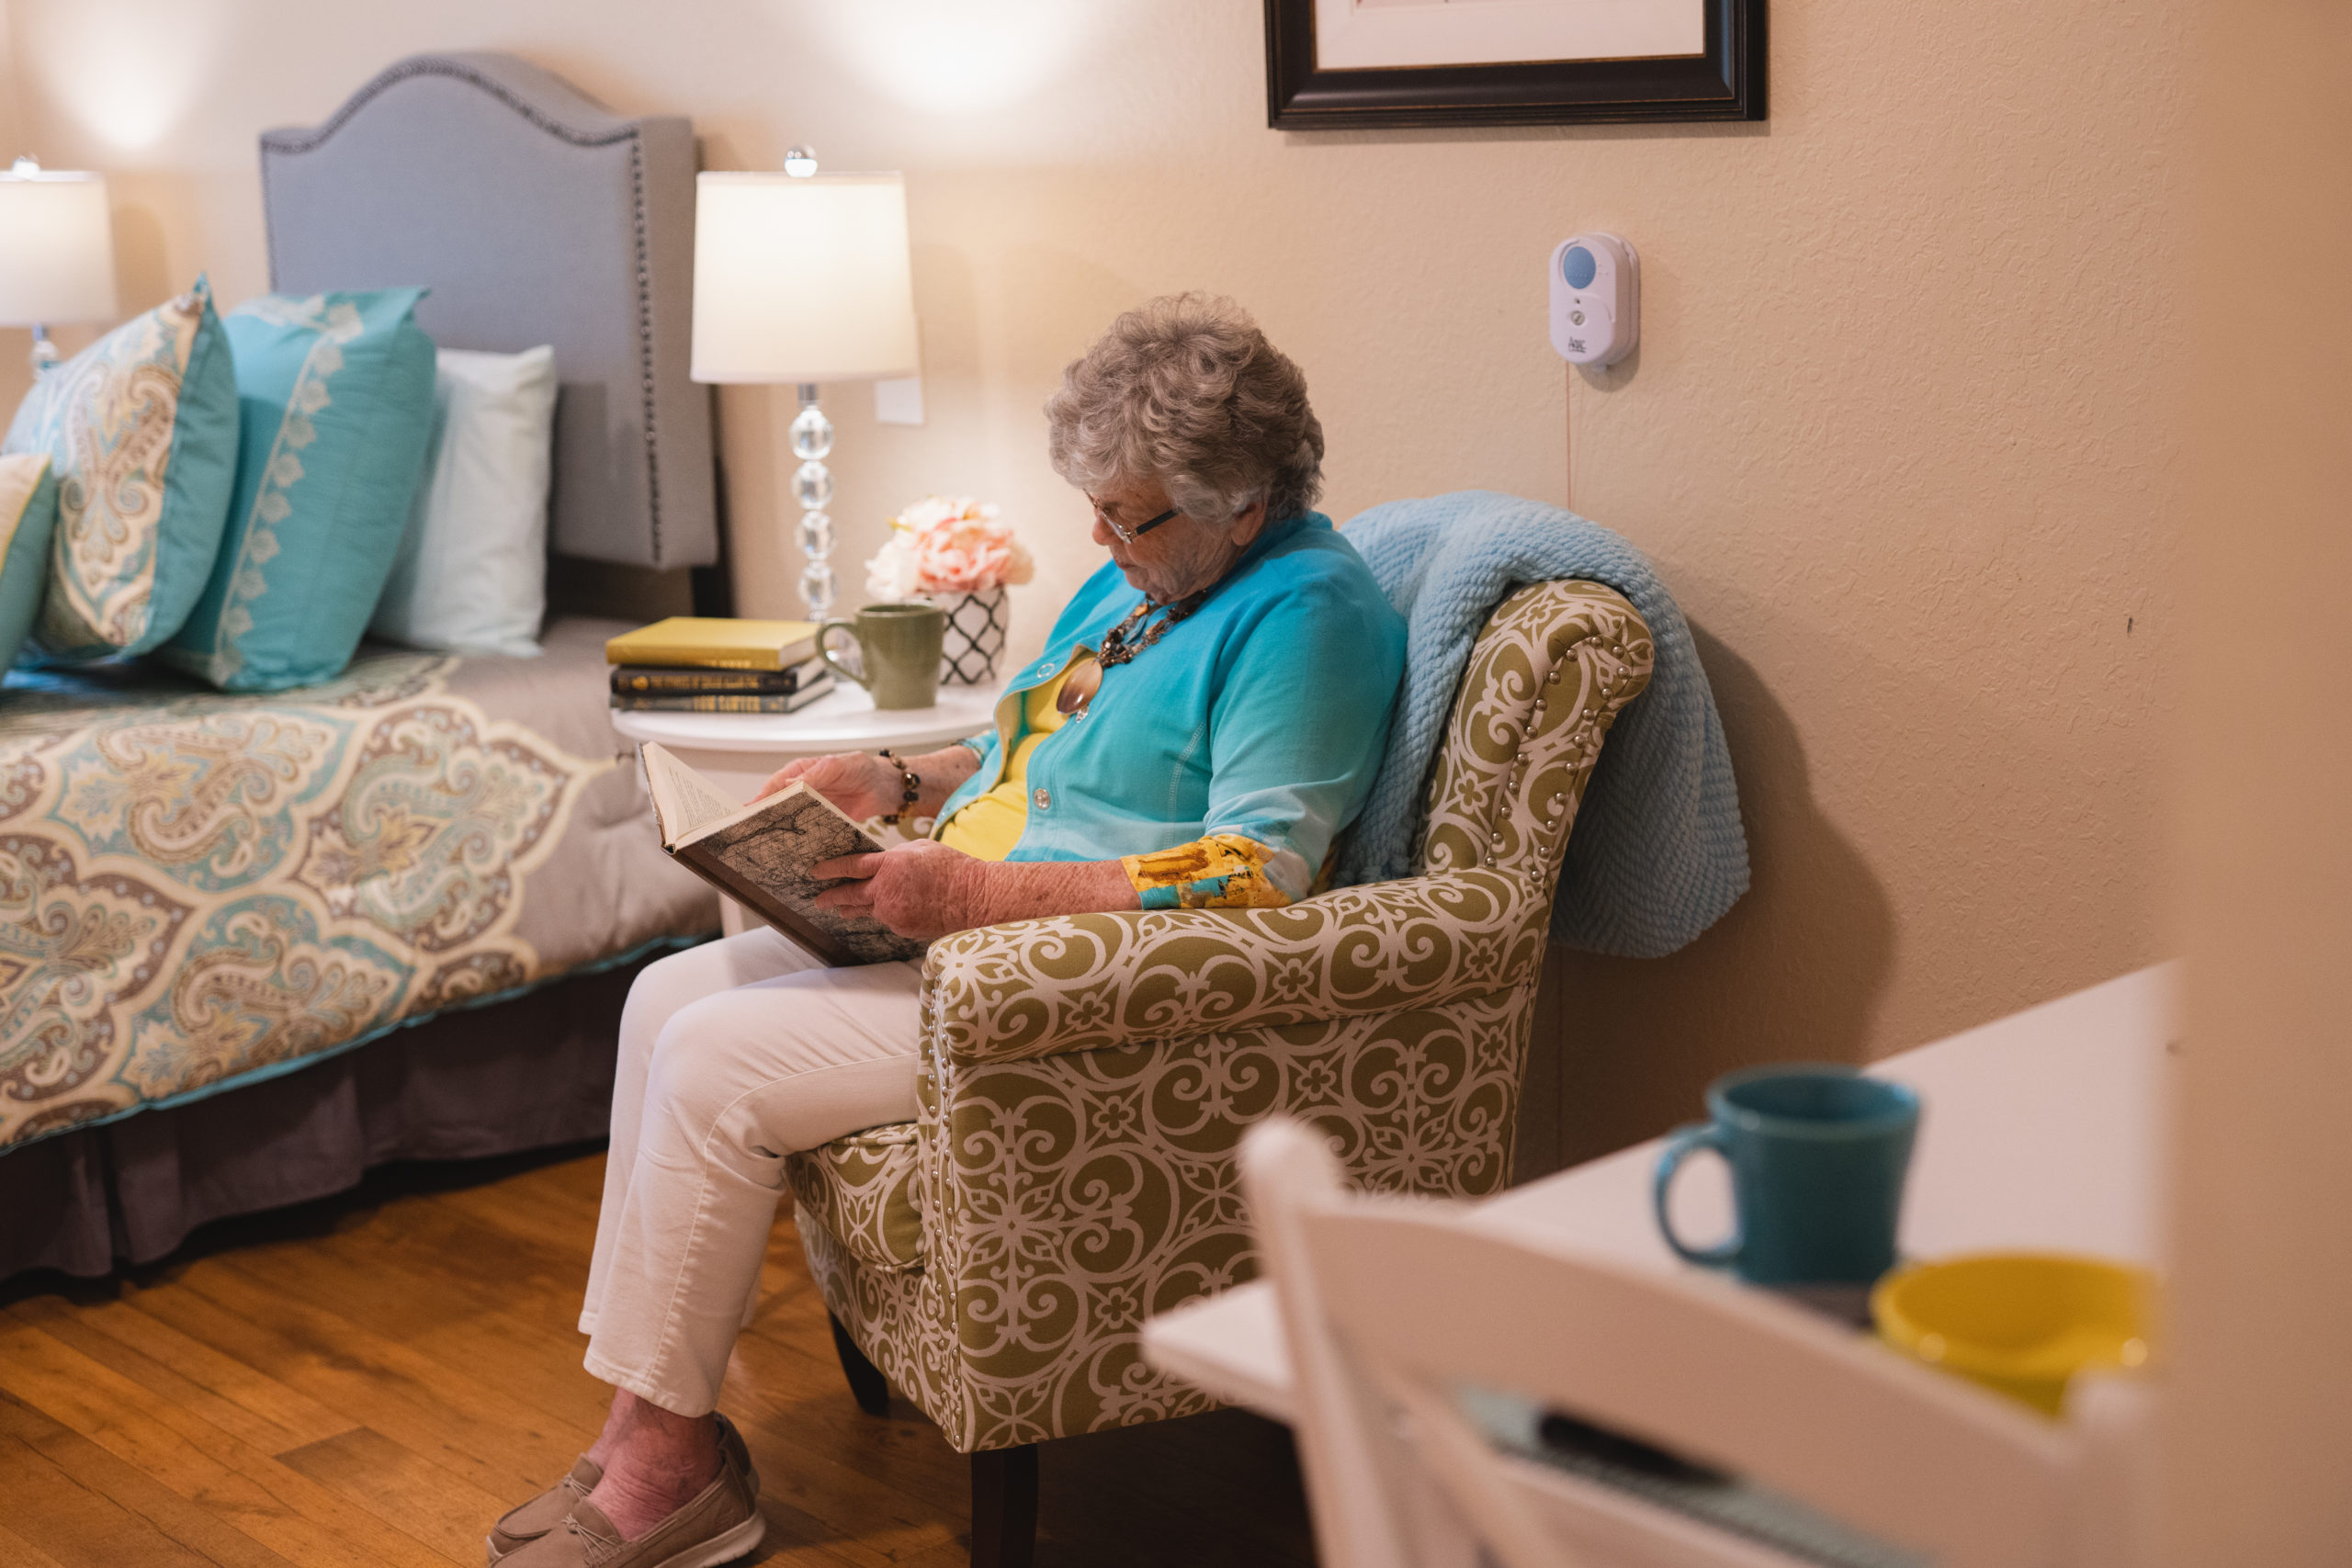 Senior Woman Sitting In Bedroom Chair Reading